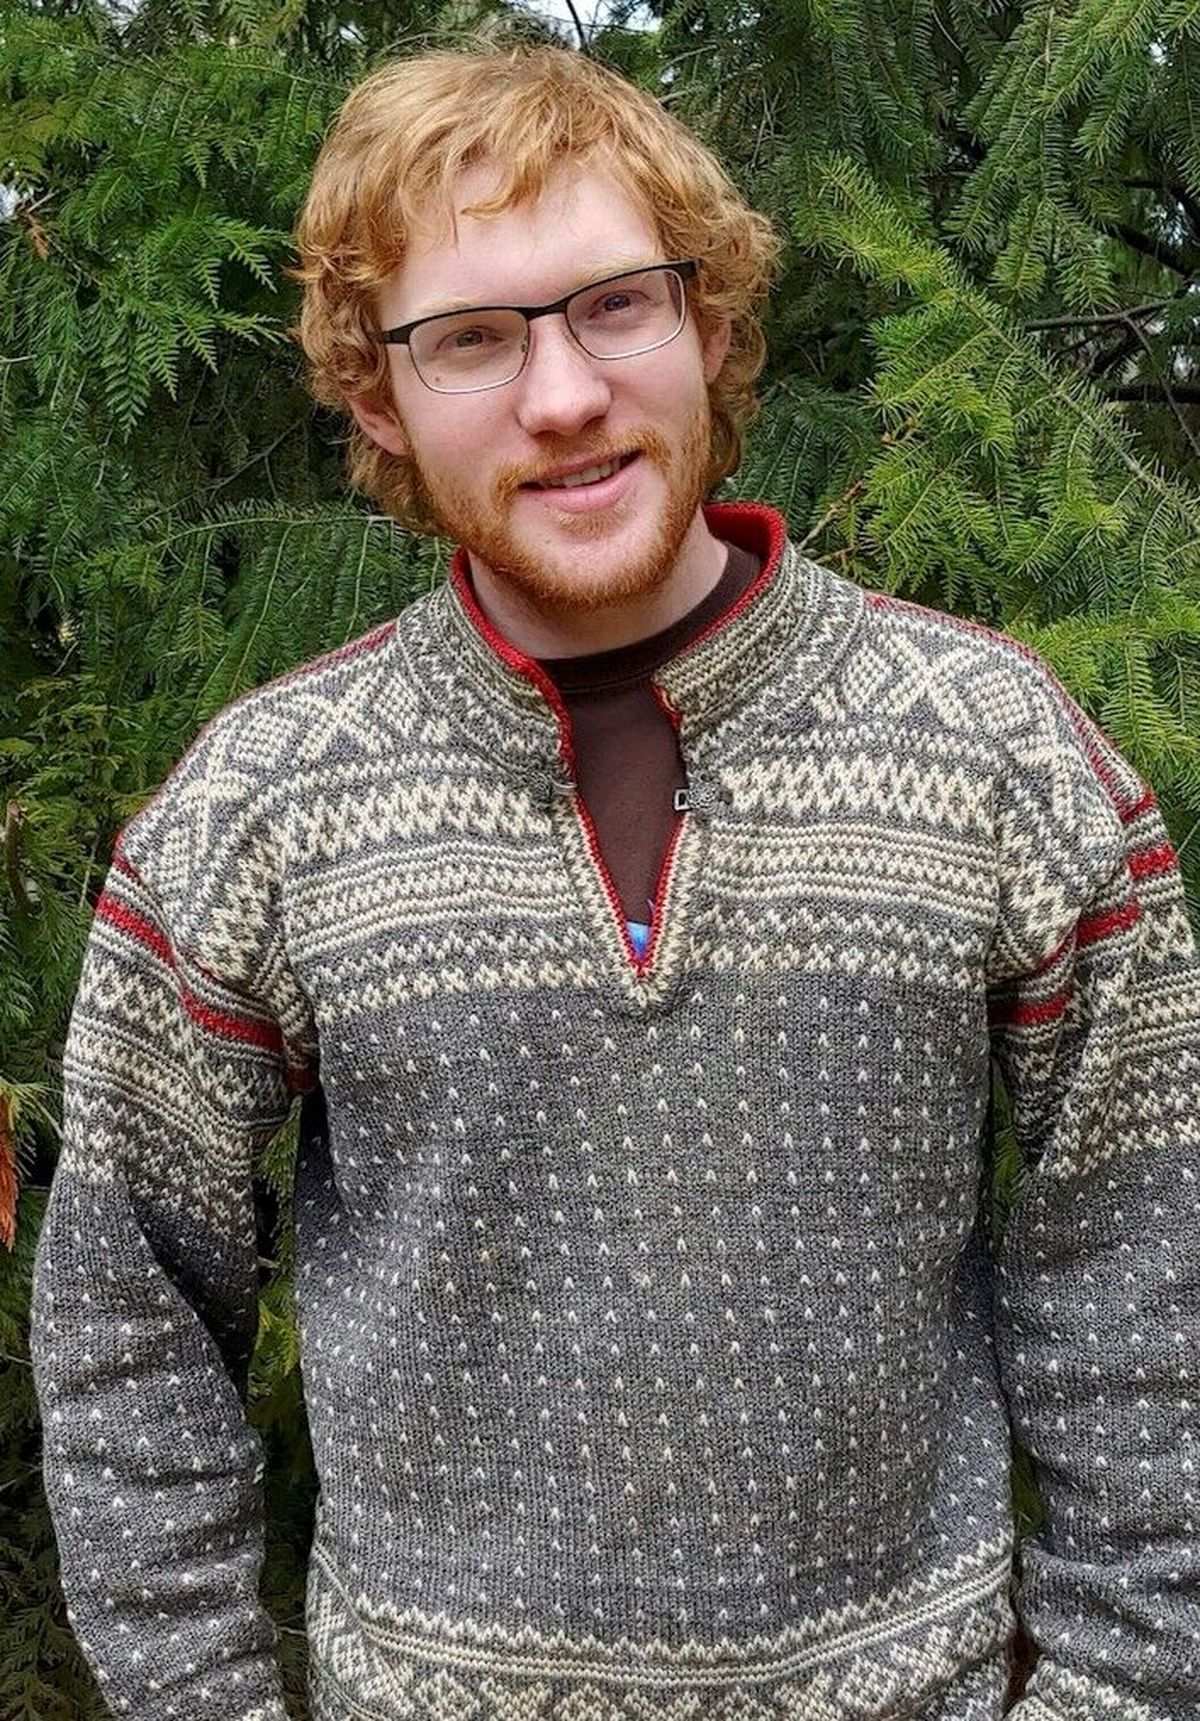 University of Idaho student, recognized with national scholarship, researches how susceptible animals are to COVID-19